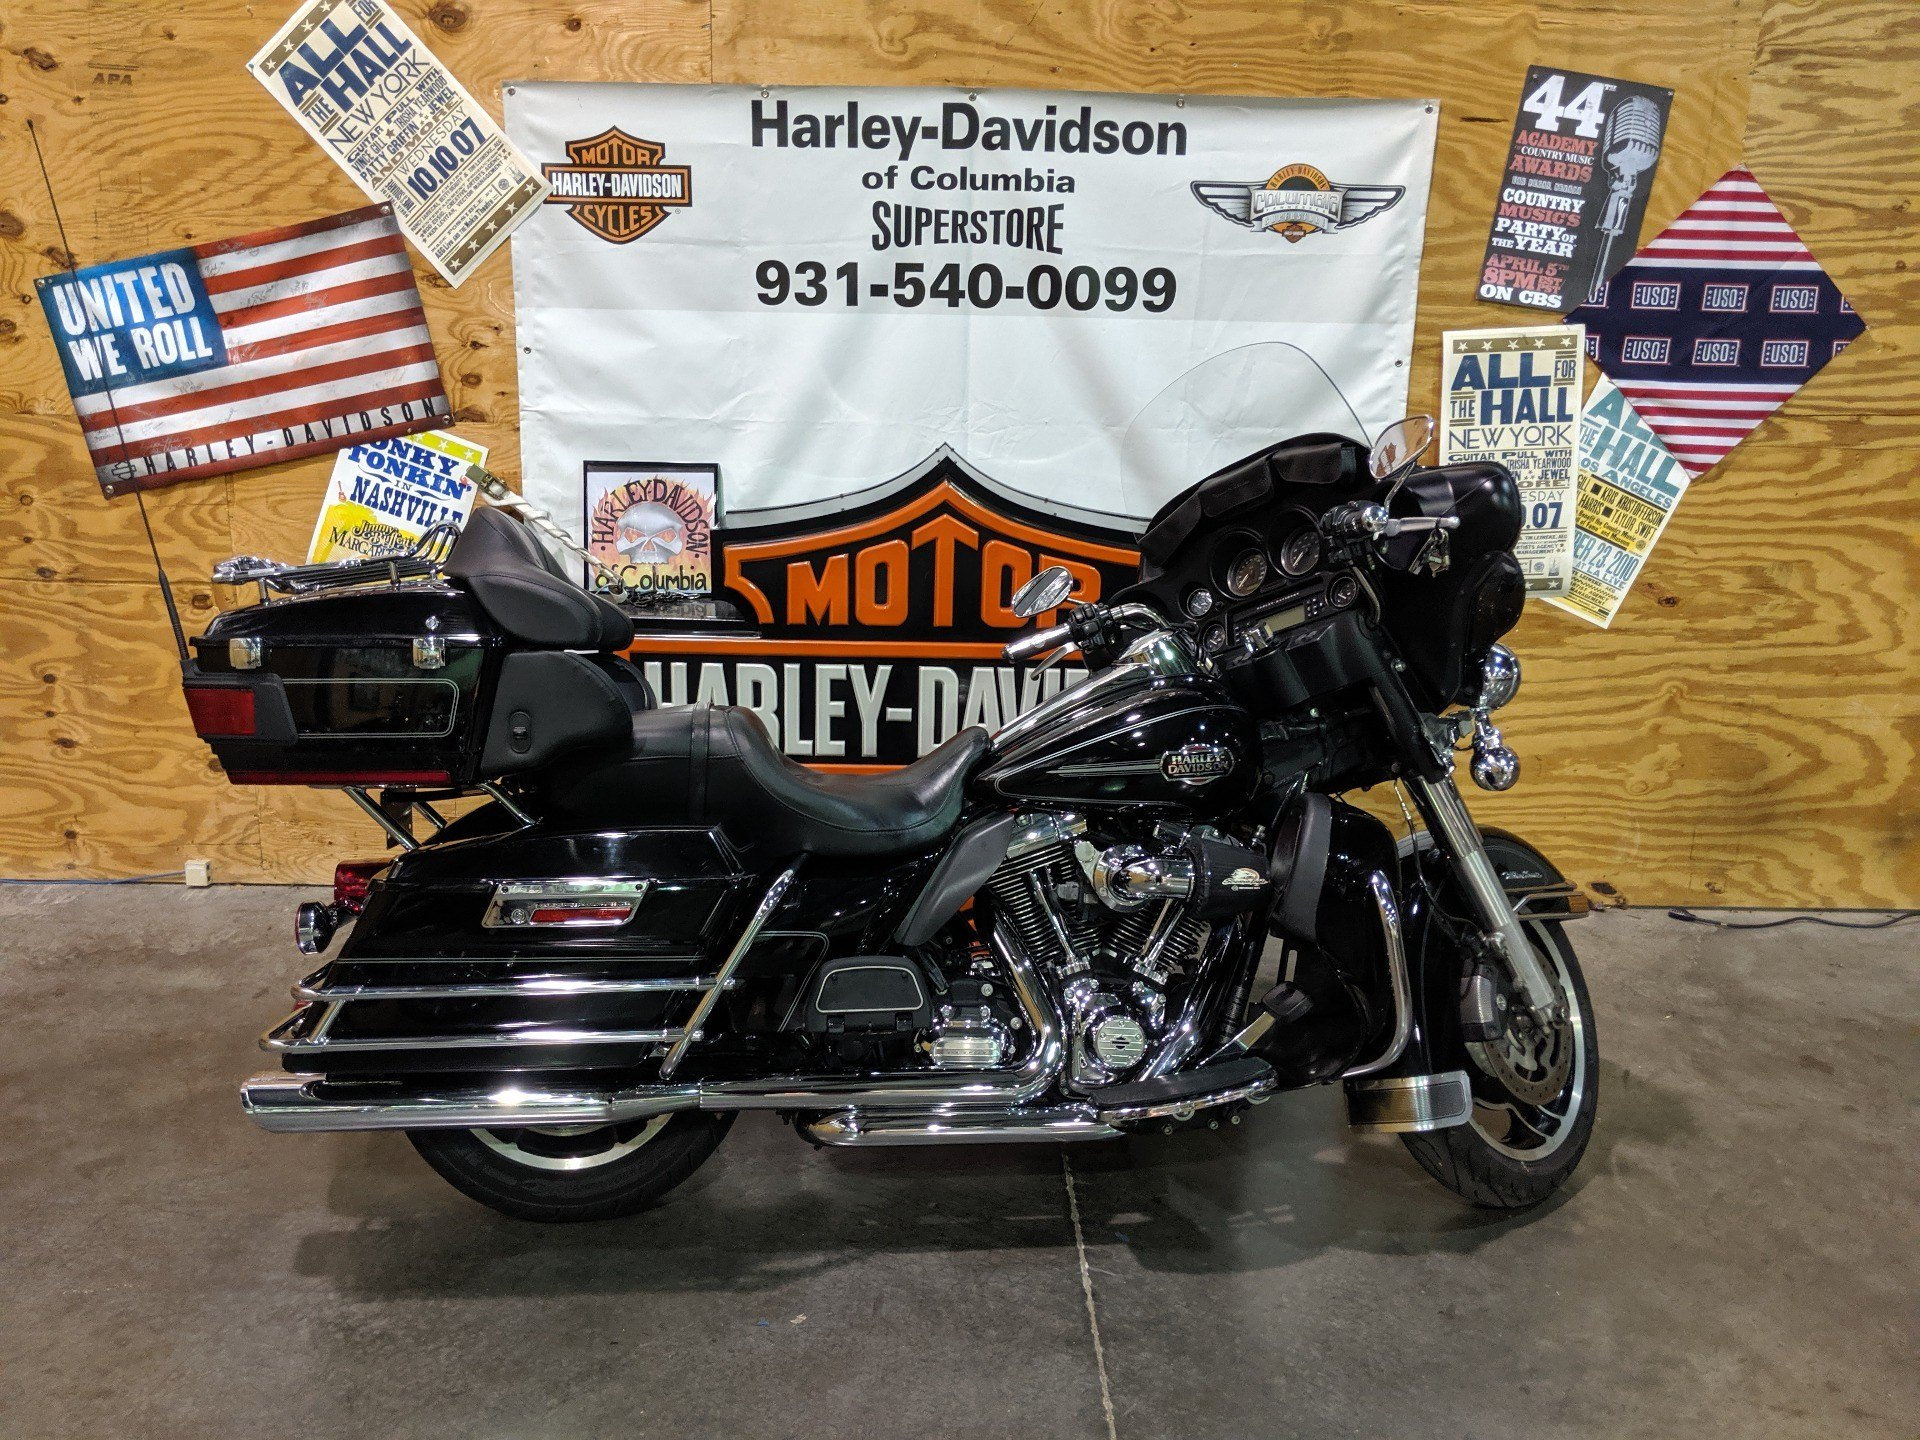 2013 Harley-Davidson FLHTCU in Columbia, Tennessee - Photo 1